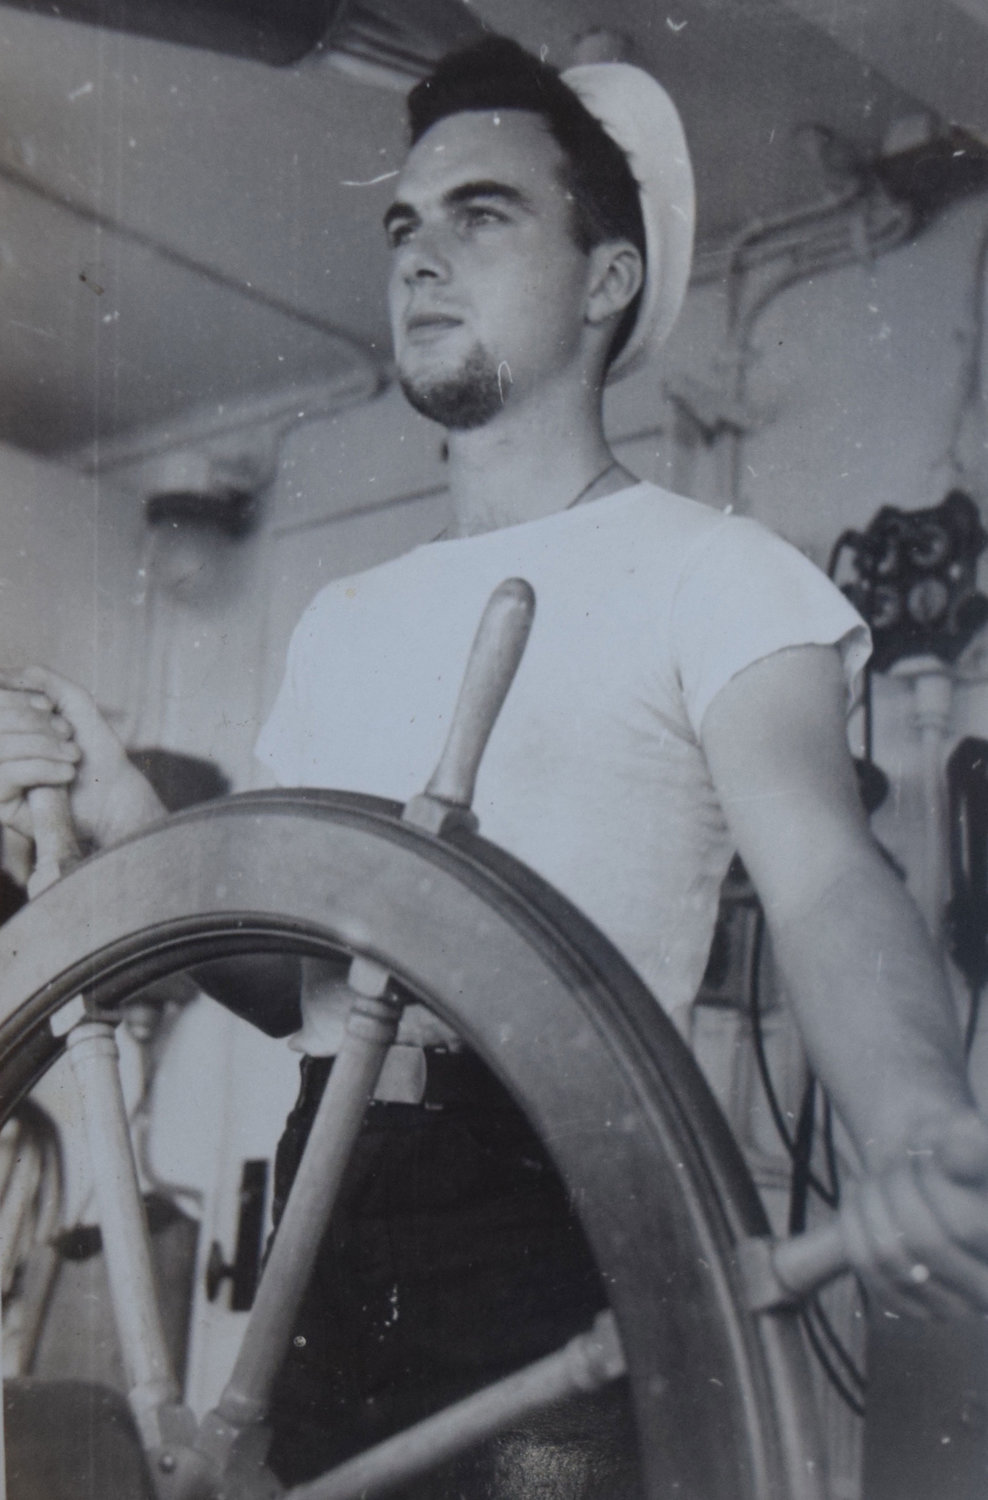 John Finn in November 1944, at 24-years-old, working on a U.S. Coast Guard freight supply ship during WWII.